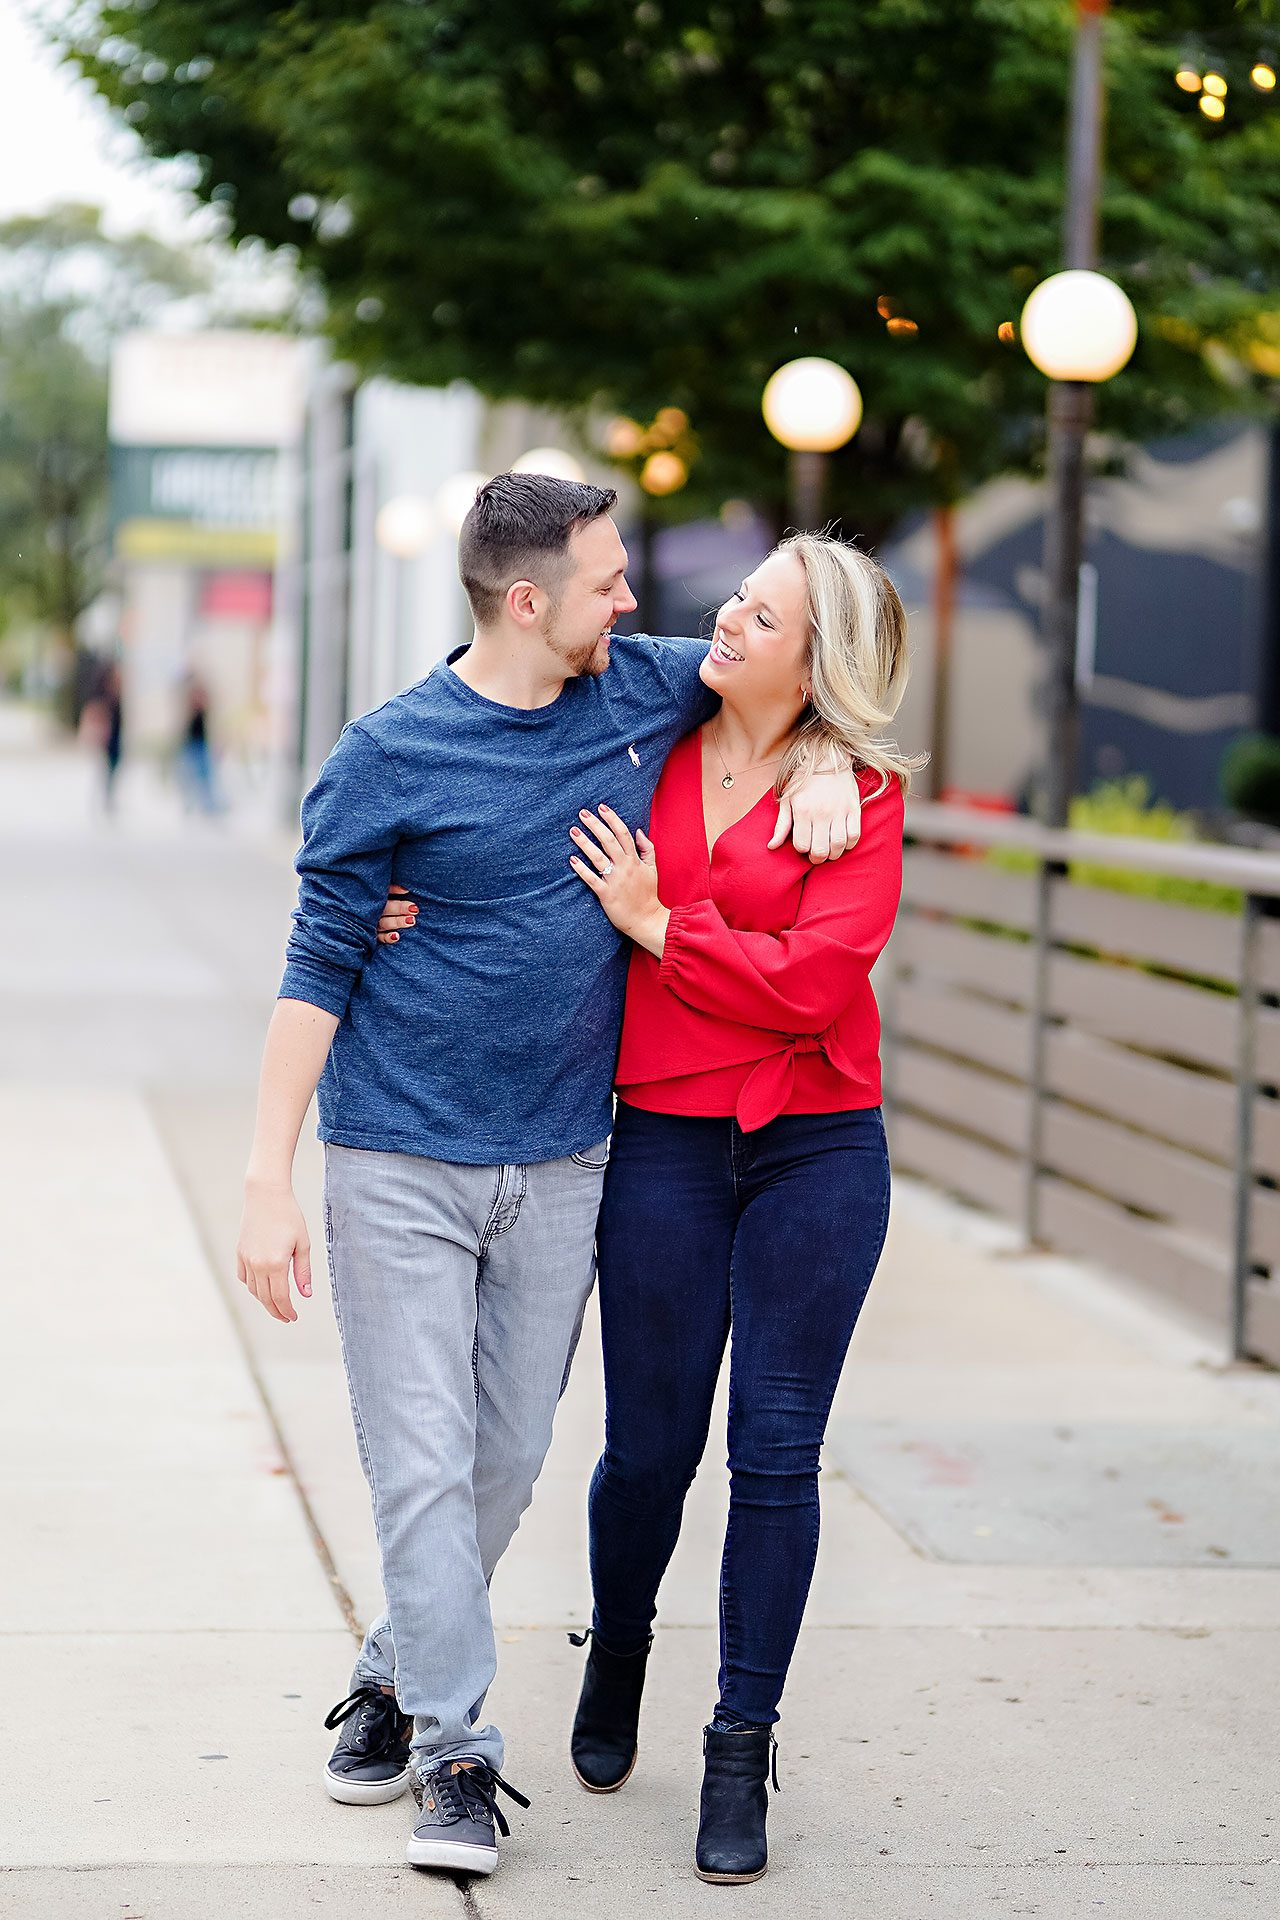 Kristen Jonny Indianapolis Downtown Engagement Session 022